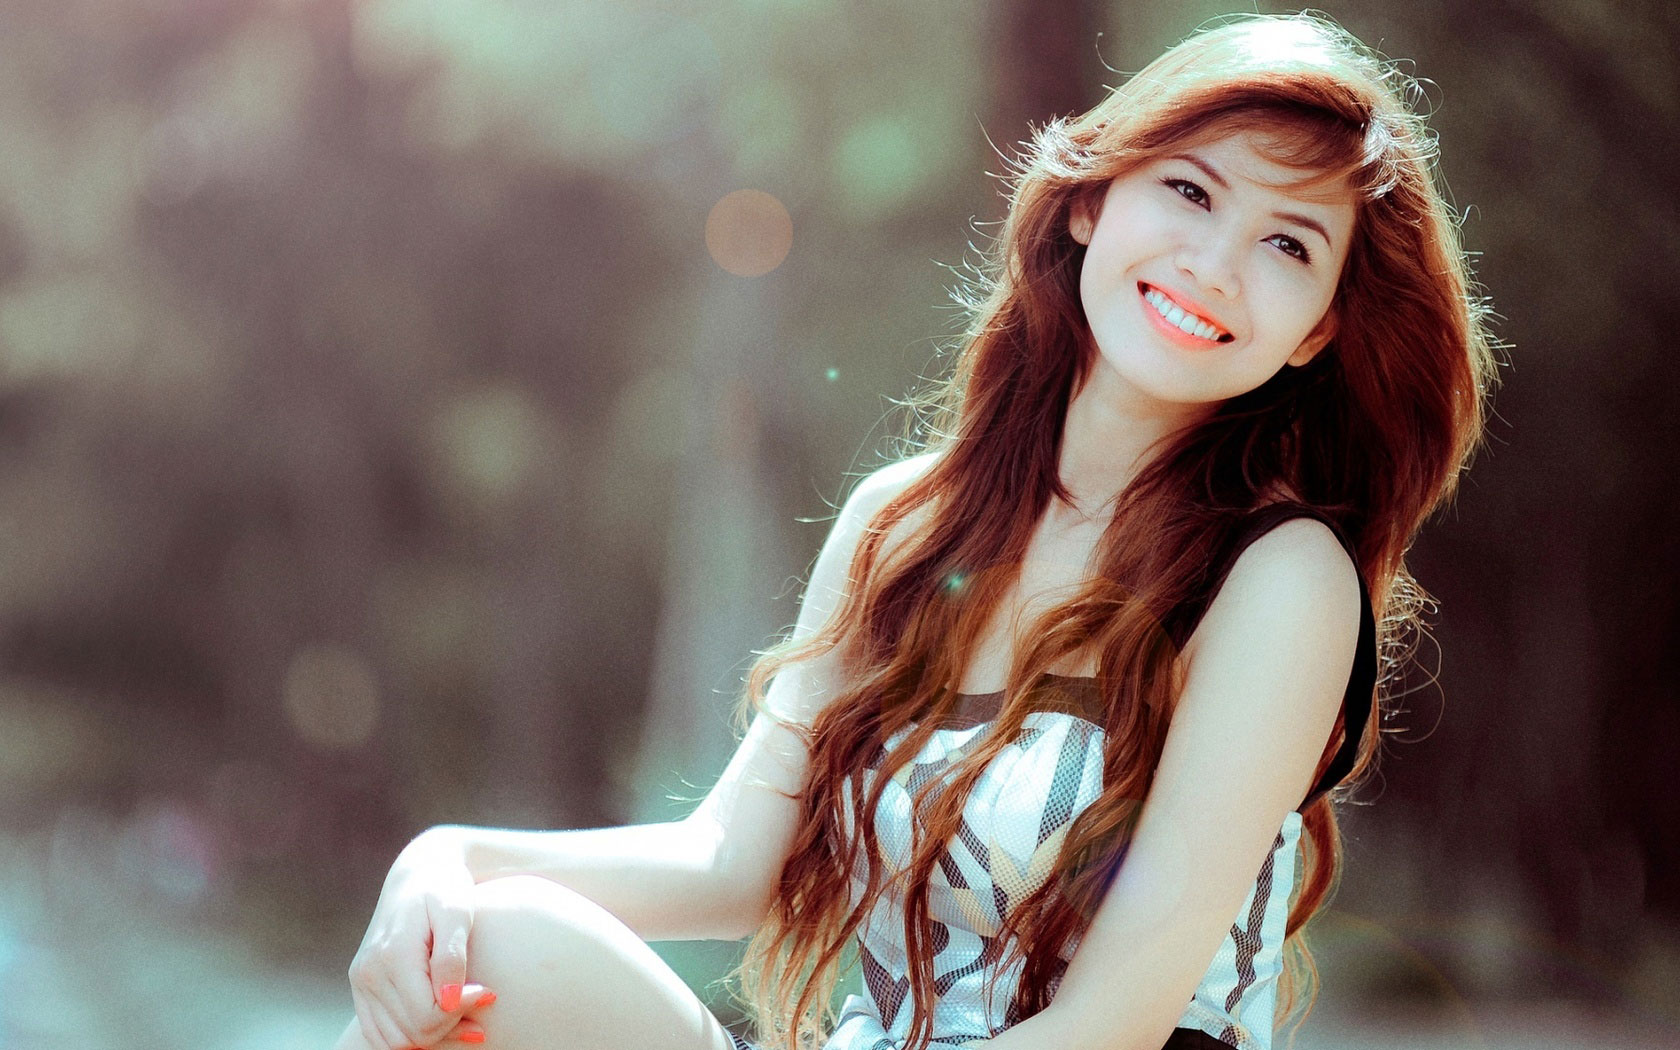 Most Beautiful Girls Smile Wallpapers long hair 1680x1050